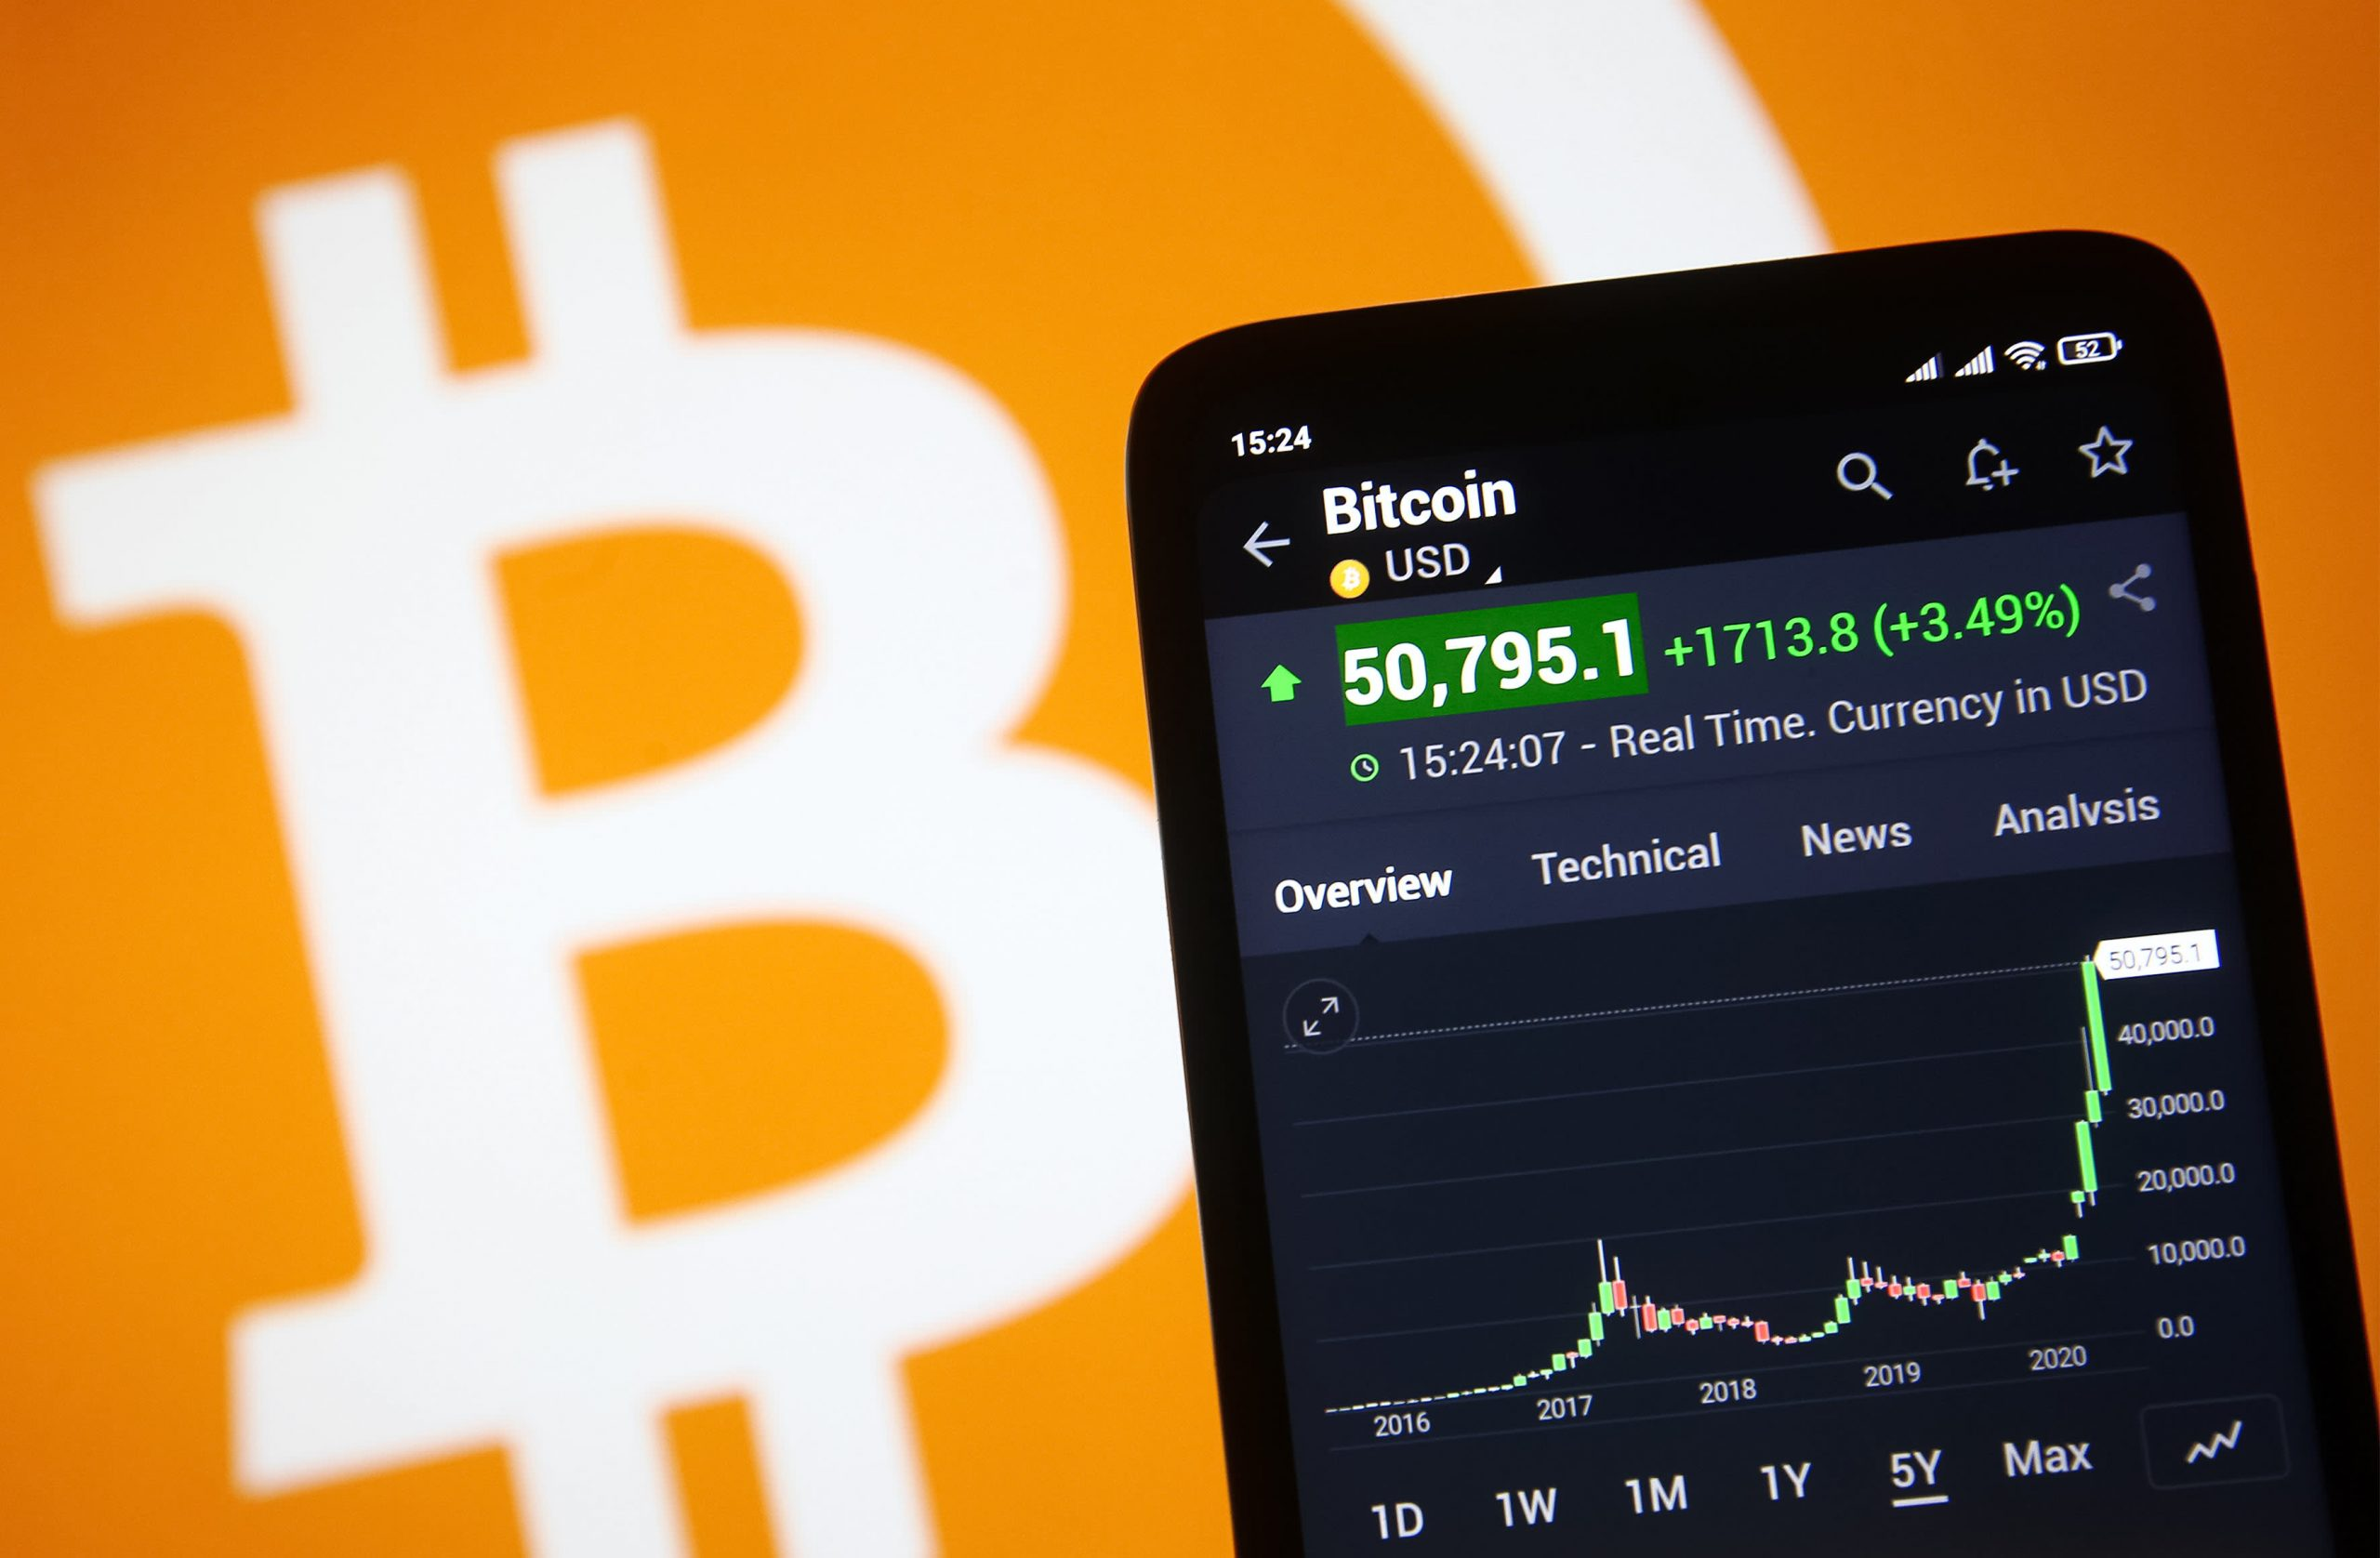 Bitcoin climbs 10% as cryptocurrency market attempts a comeback from last week's plunge